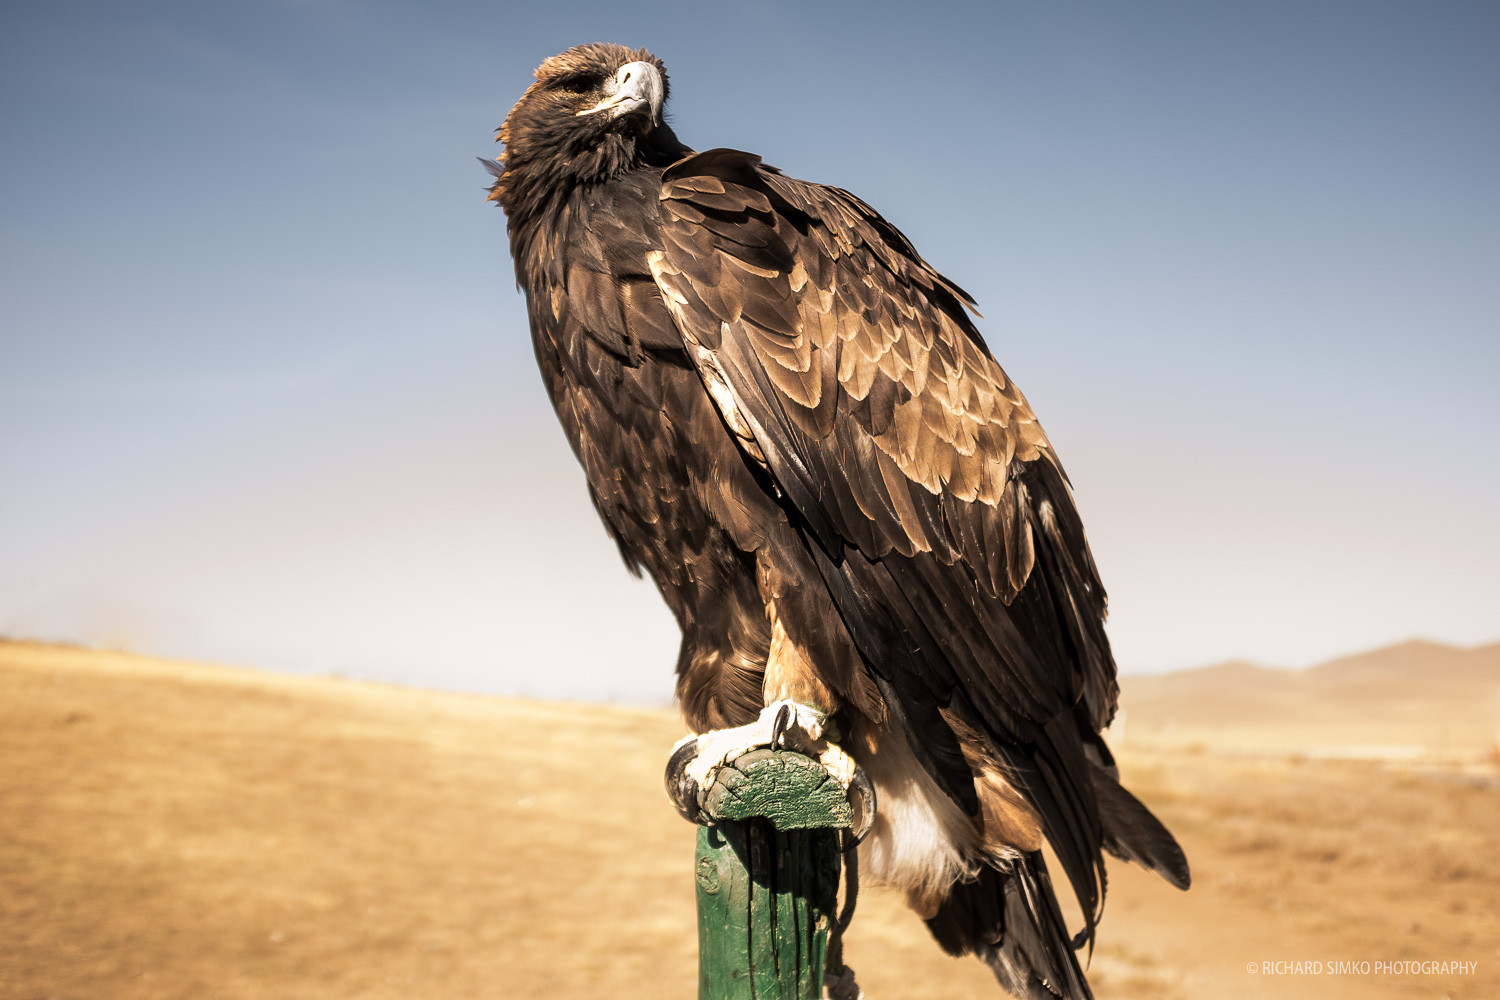 Famous golden eagle. it is still used for hunting especially by Kazakh nomads in Western Mongolia. Around Ulaanbaatar they are a tourist attraction.